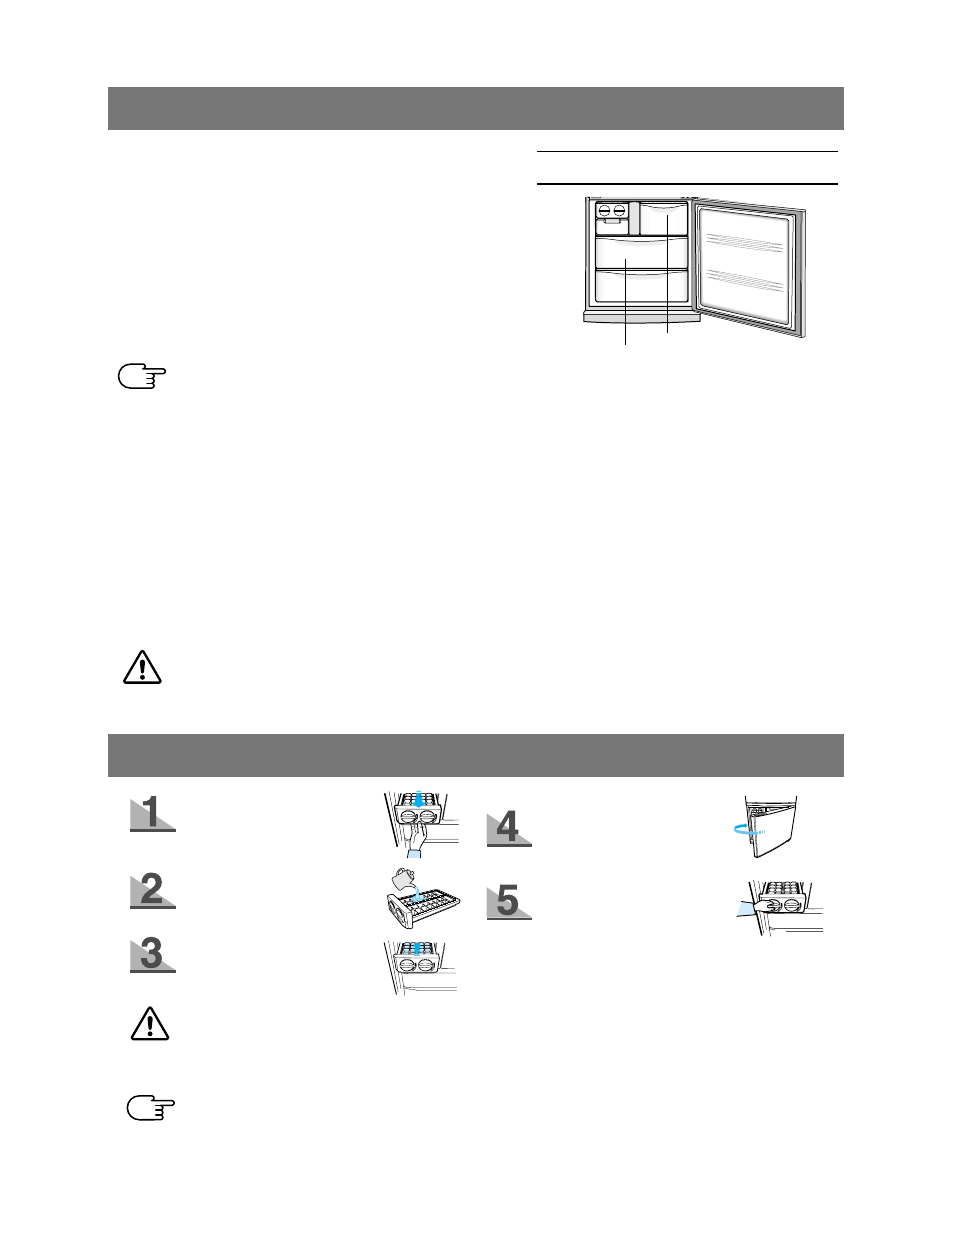 Whirlpool french door refrigerator troubleshooting & user guide.